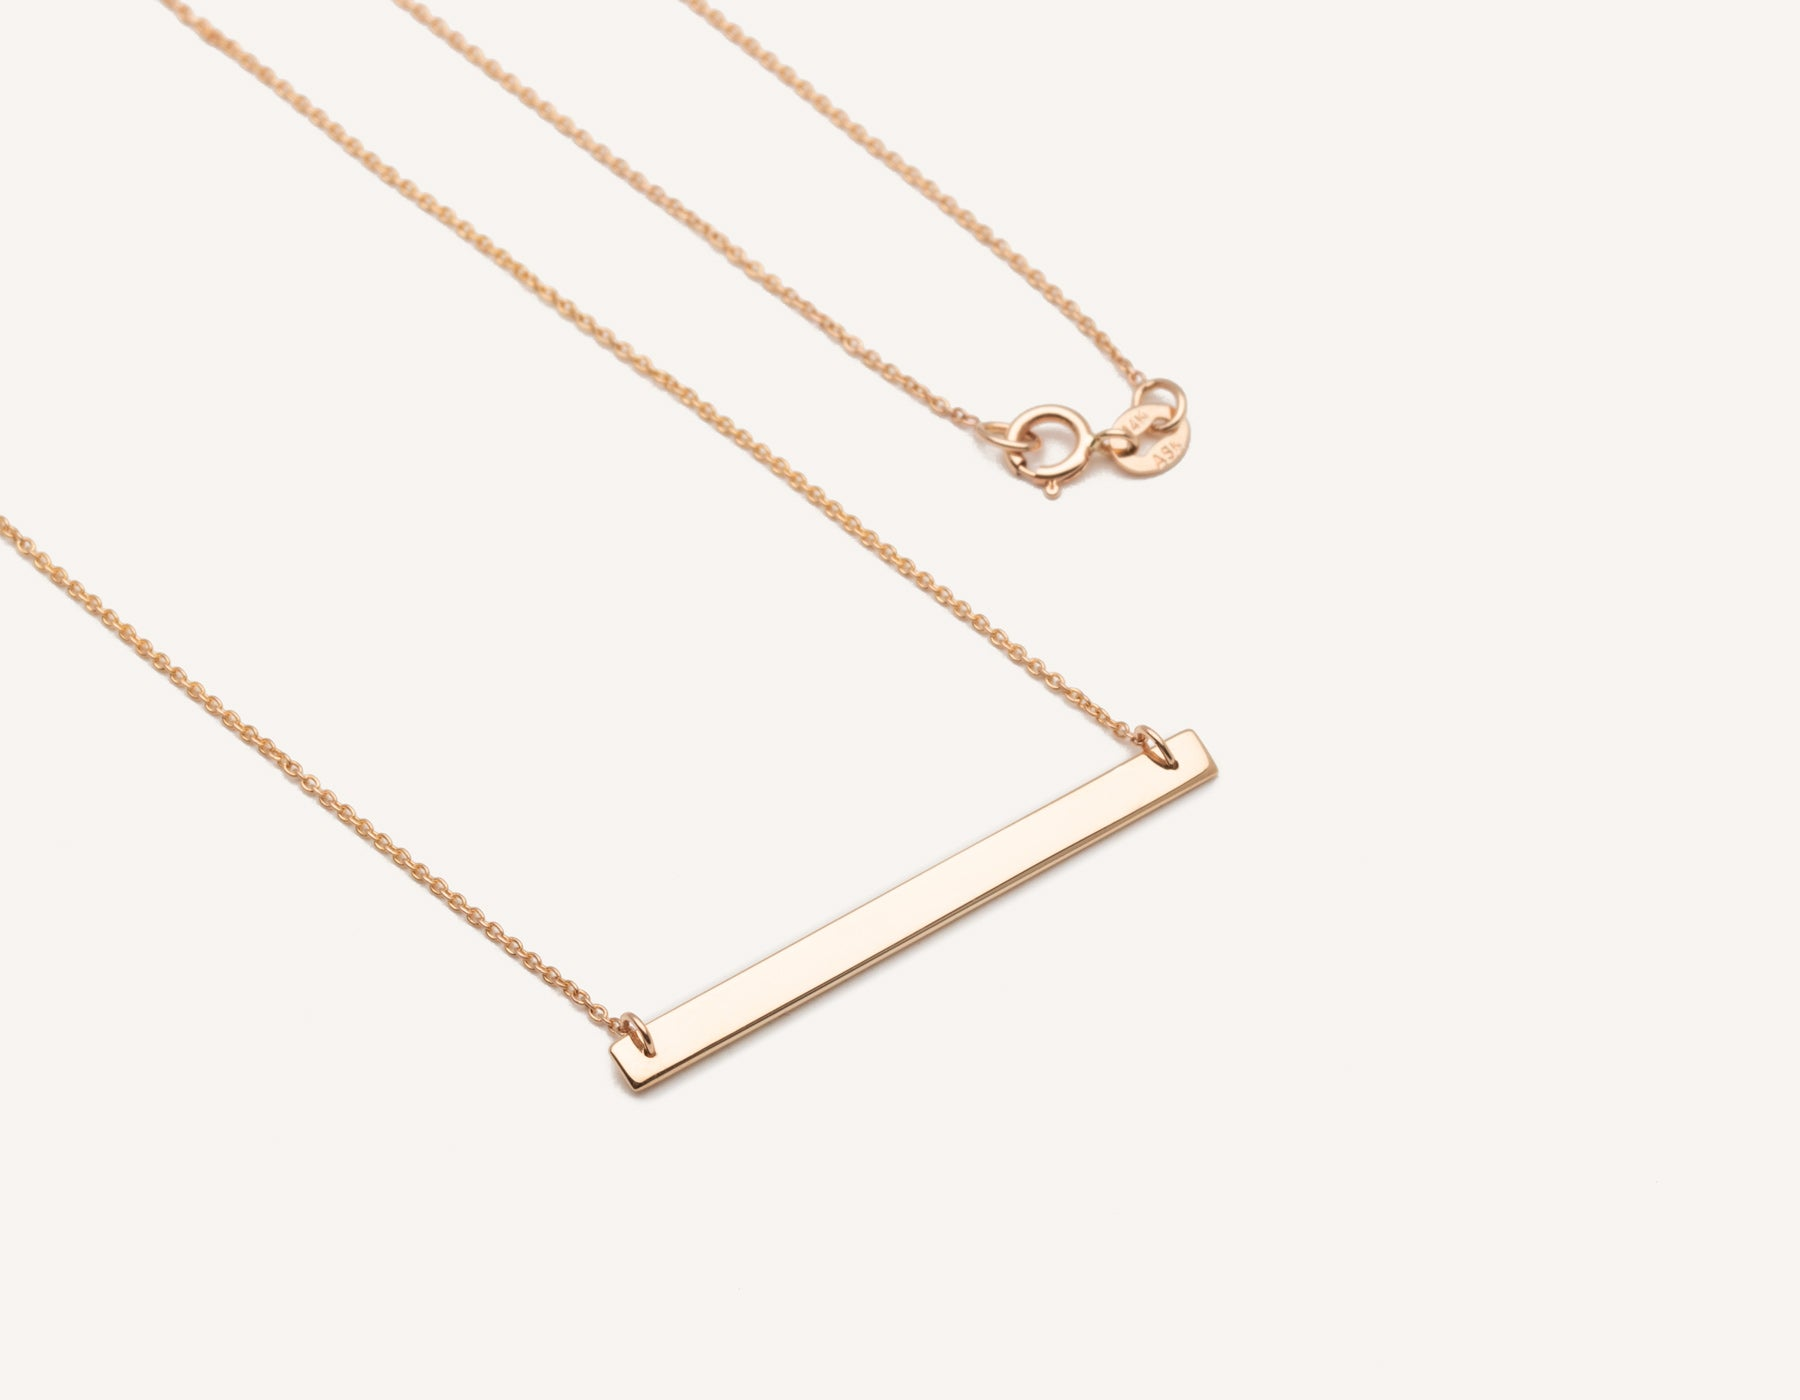 "customized minimalist 14k solid gold Bar Necklace on 17"" chain with spring ring clasp by Vrai & Oro sustainable jewelry, 14K Rose Gold"